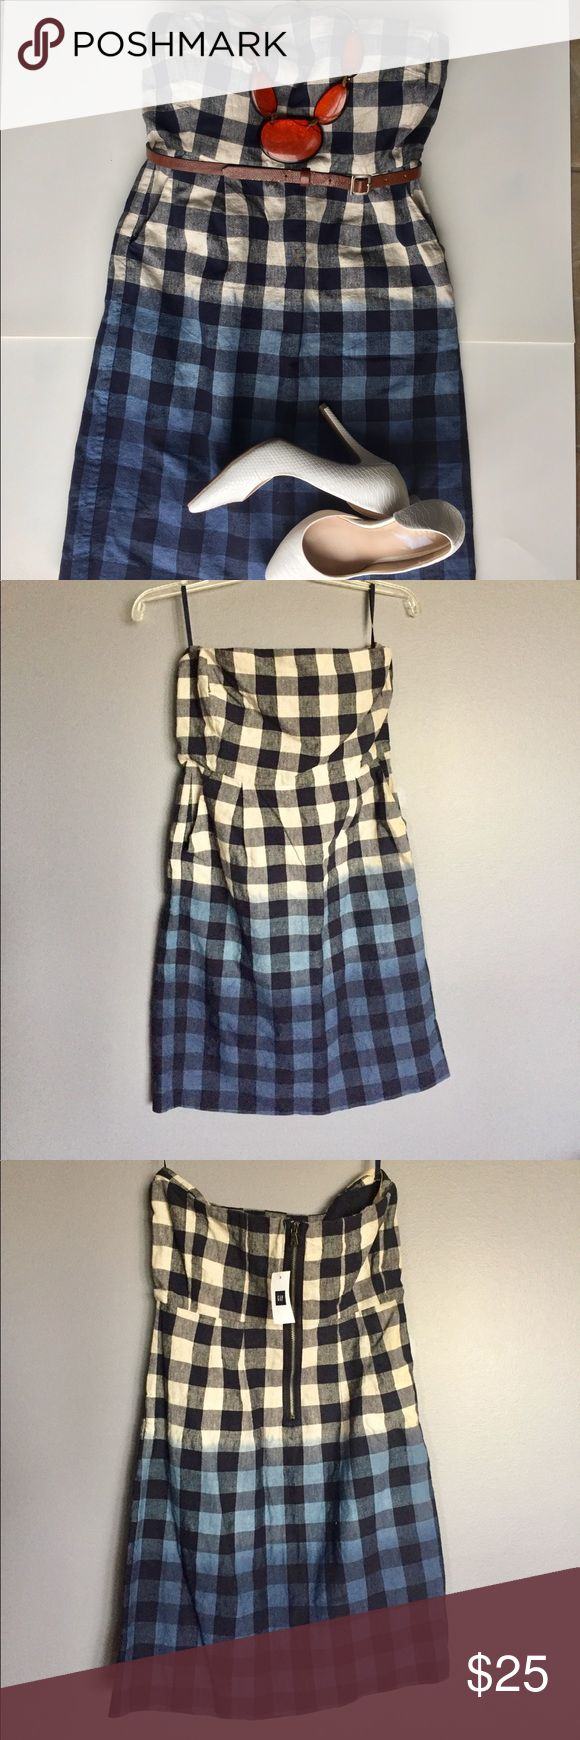 GAP Ombré Mini Tube Dress Size 6 Dress up in this Cute, fun #Mini #Tube #checkered GAP dress with blue & cream Ombré effect. Match with lovely heels and accessories for a casual date with friends :) Bundle and Save! GAP Dresses Mini